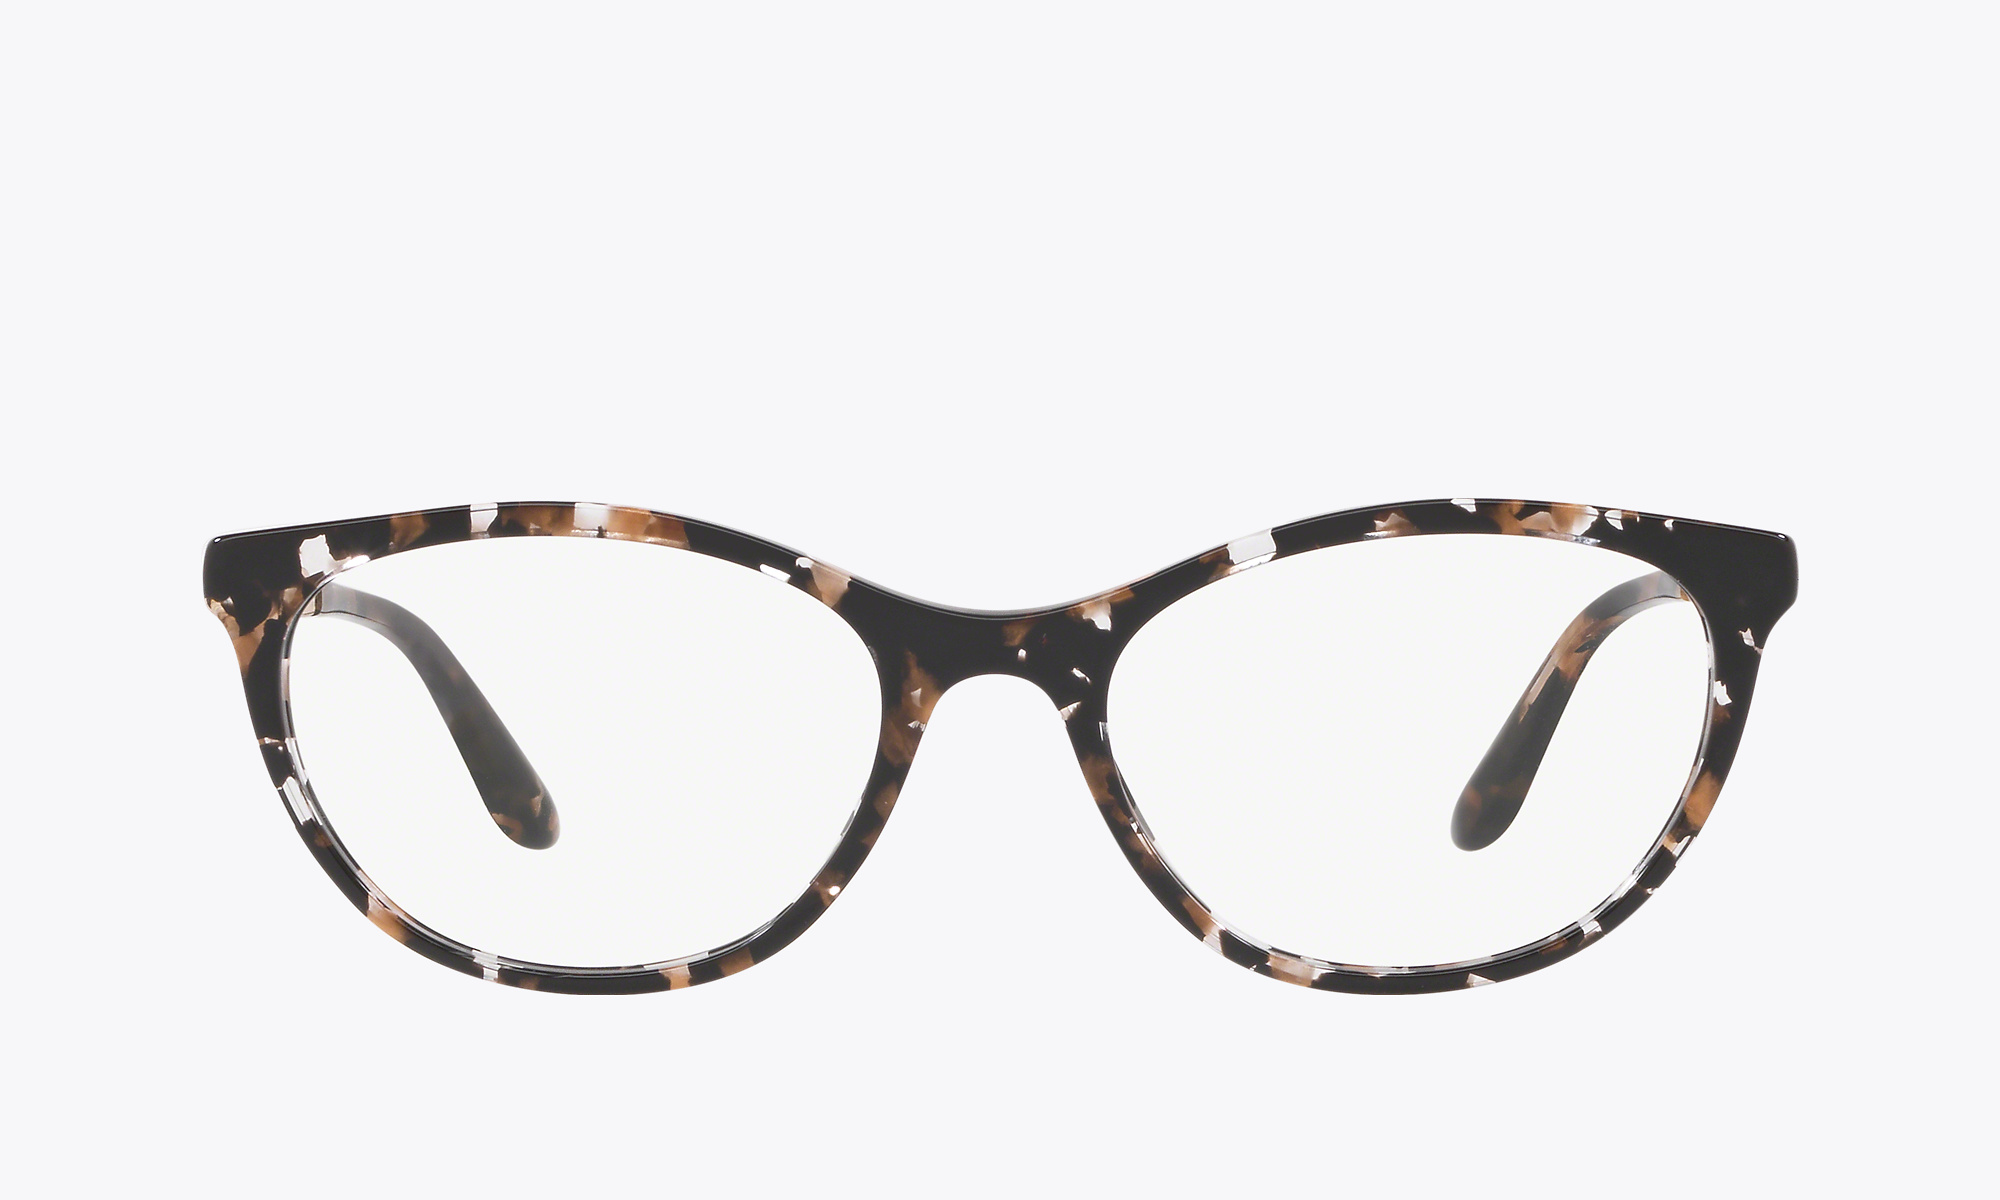 Image of Dolce & Gabbana DG3310 color Black